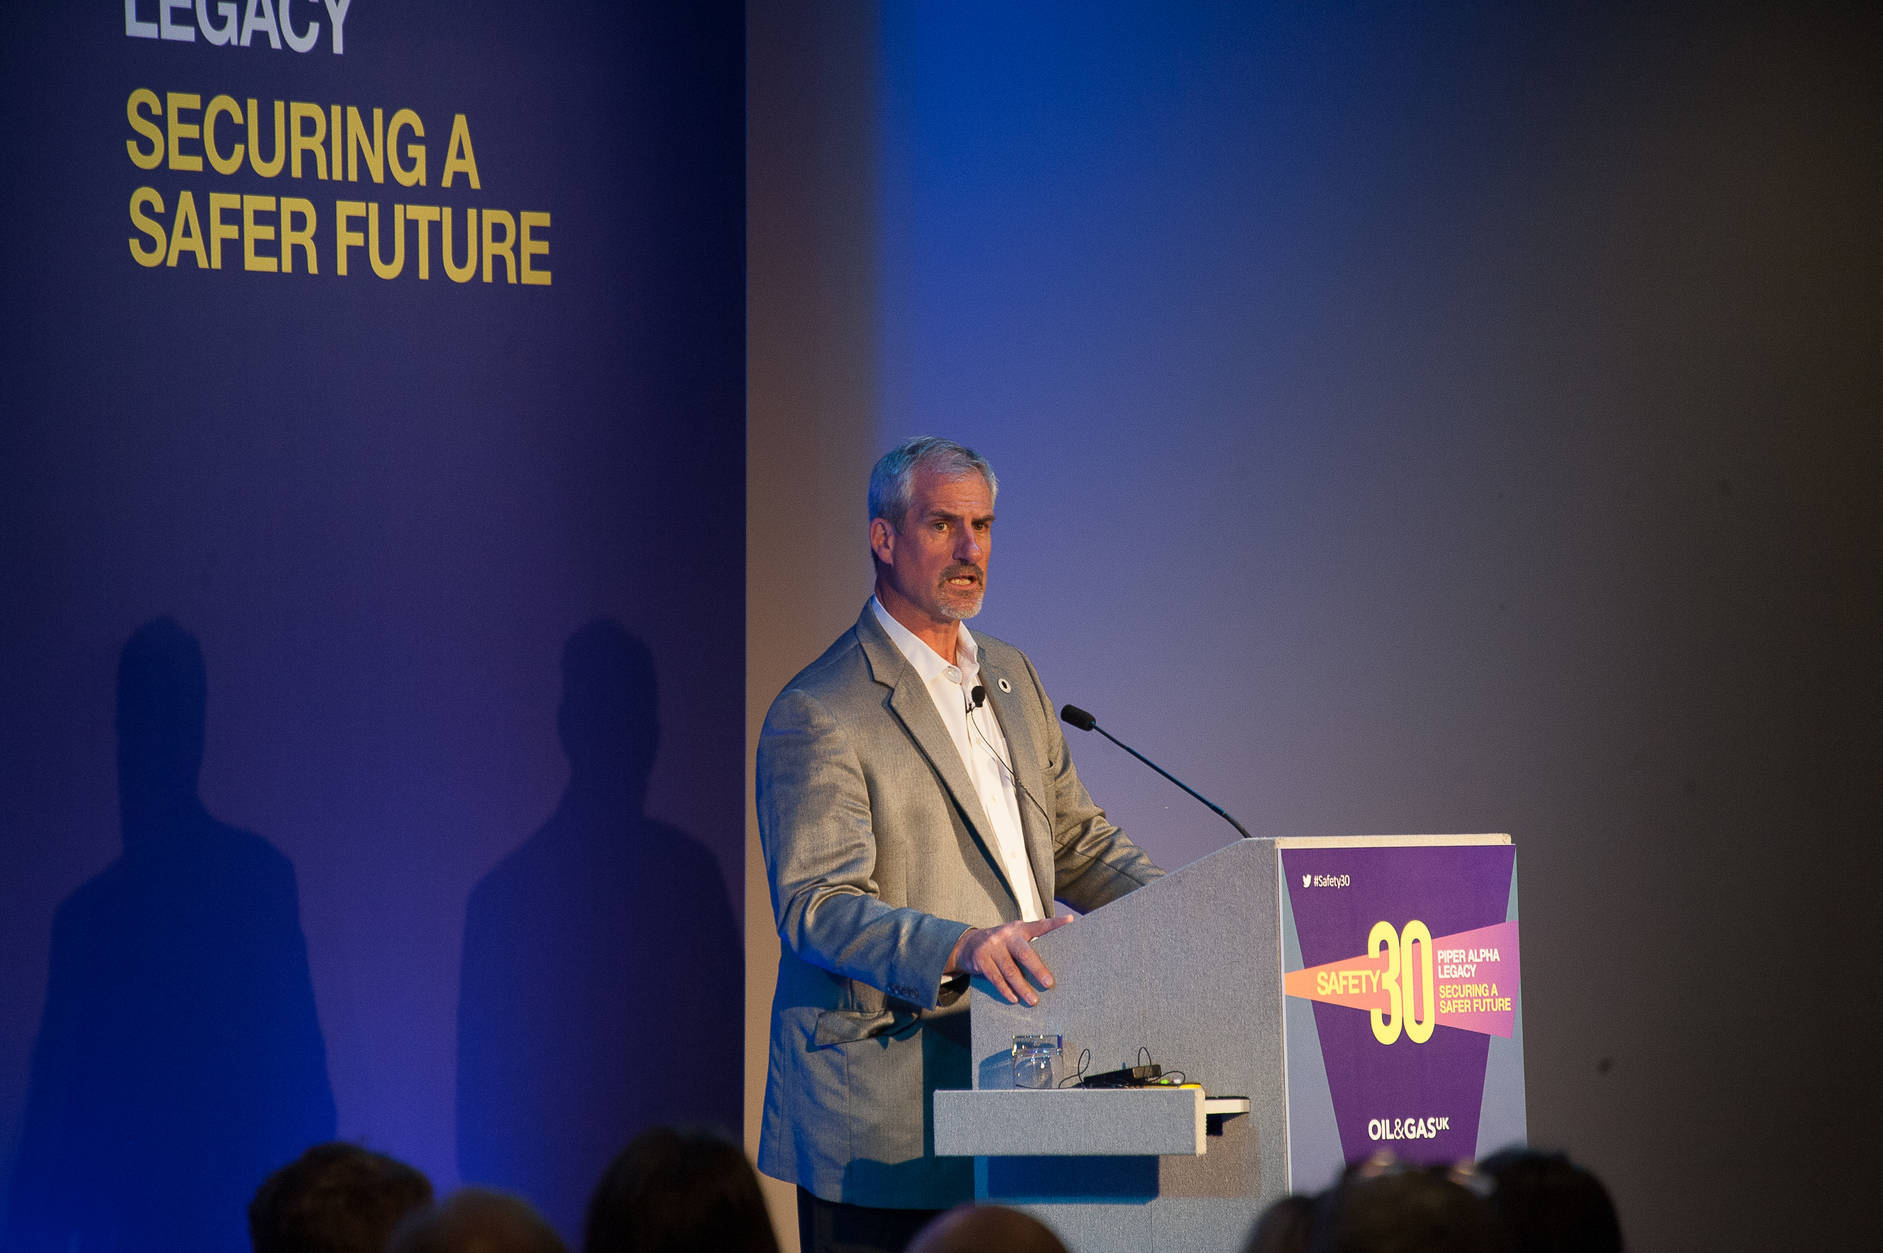 Steve Rae, a survivor of Piper Alpha, closed the Safety 30 conference.